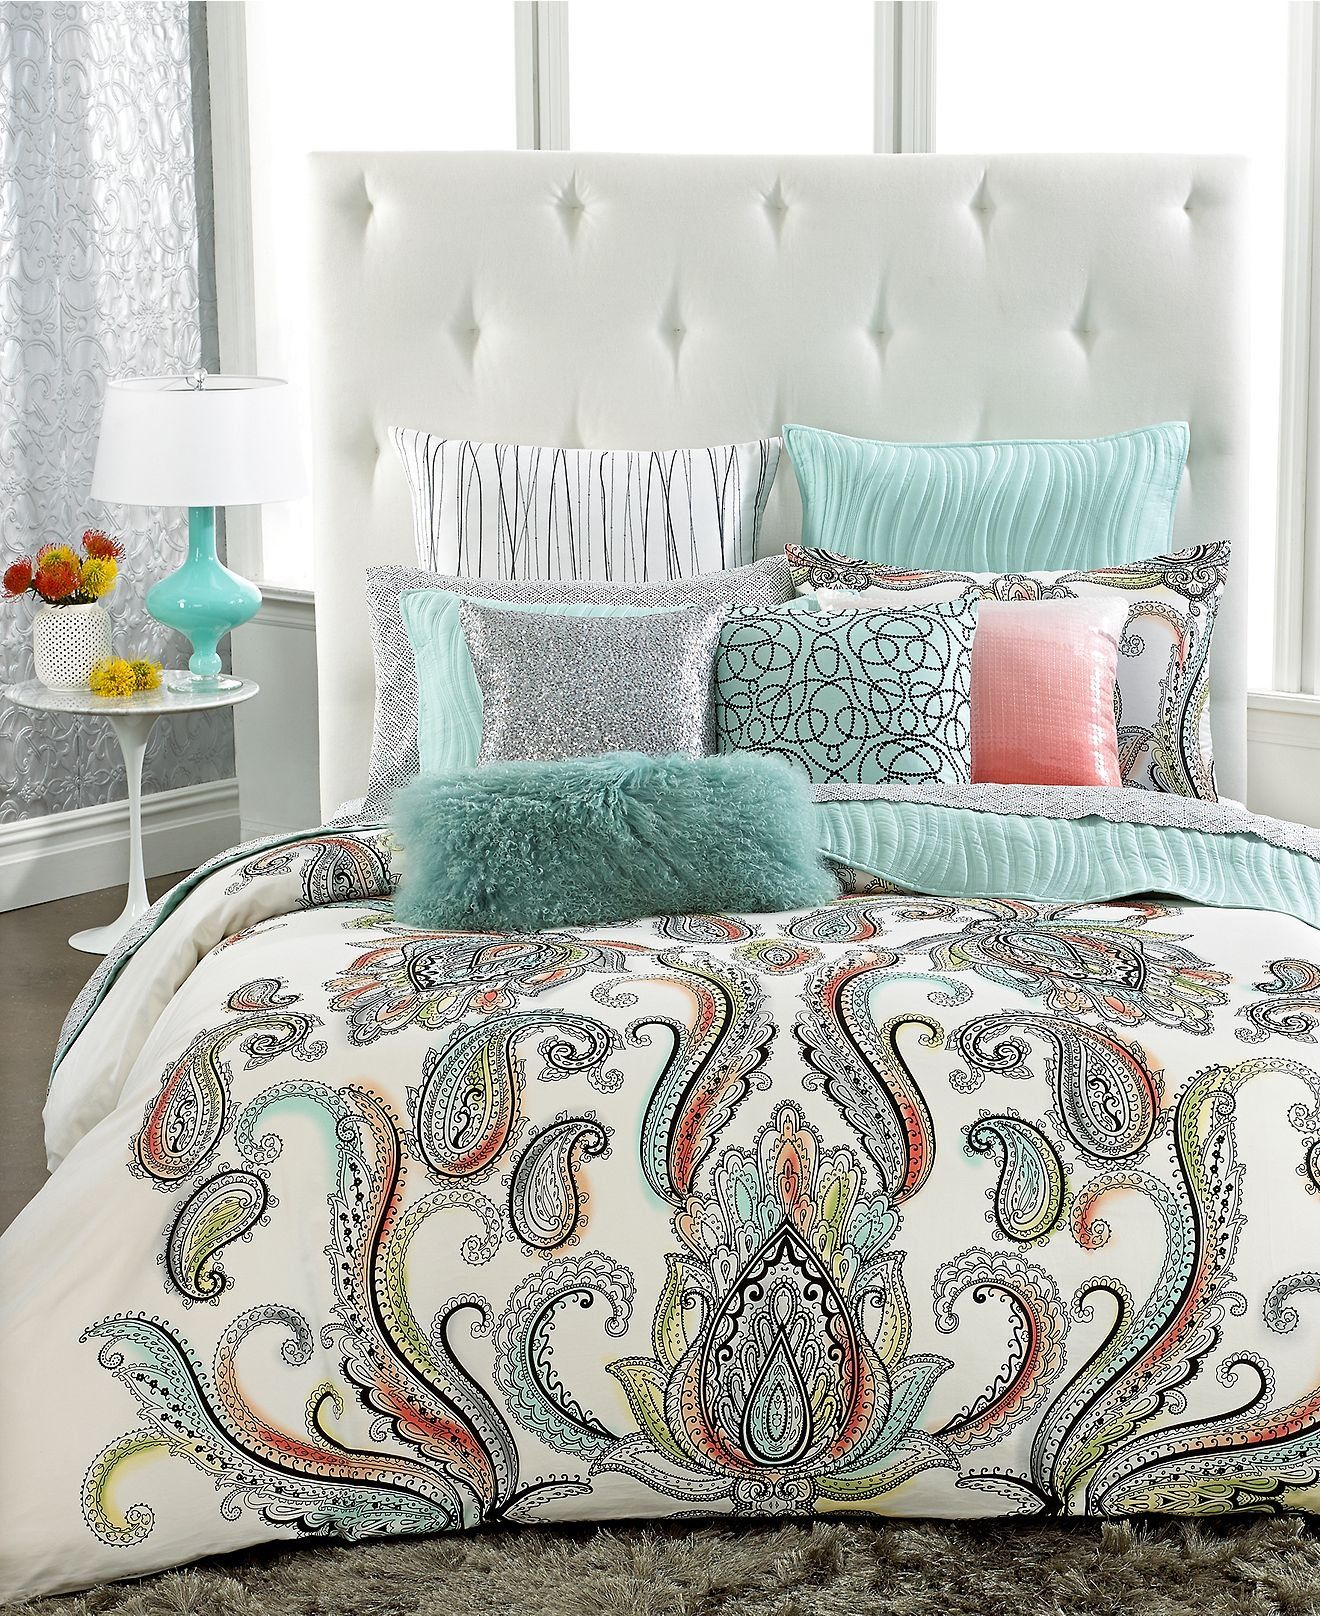 Bedroom Boards Collection Glamorous Design Inspiration